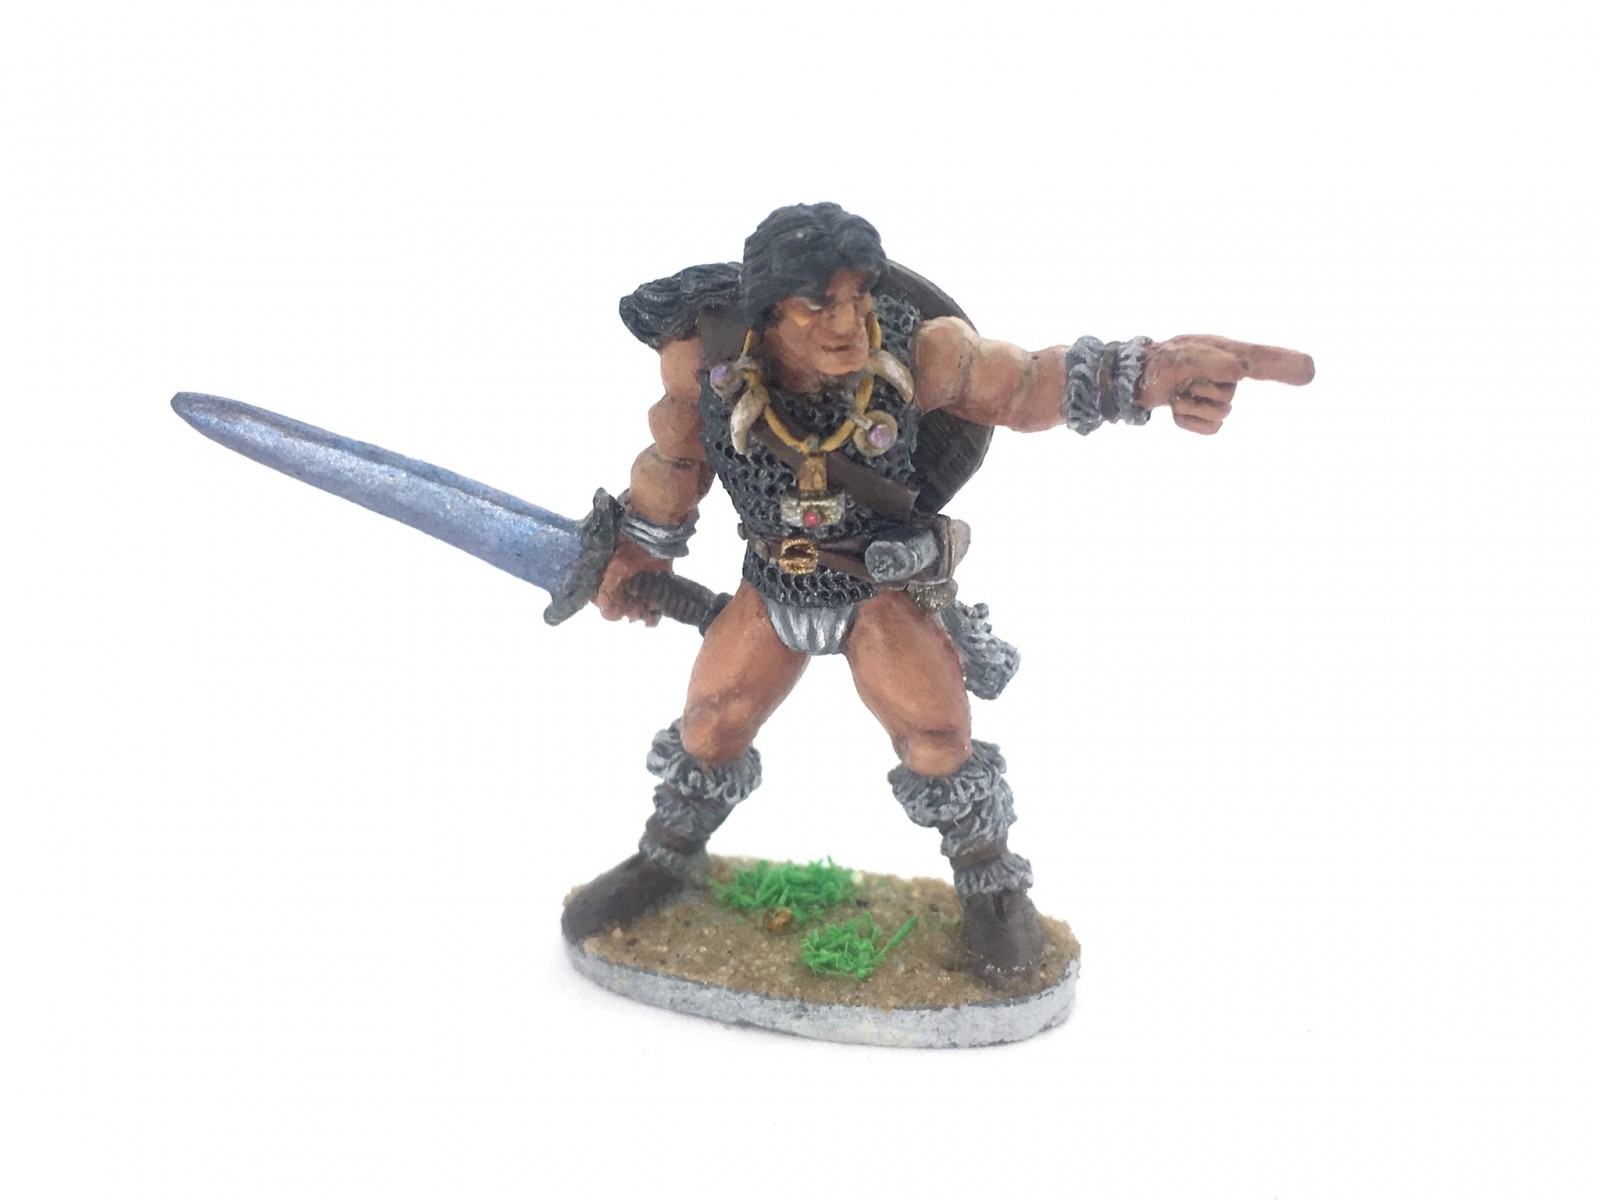 Vintage Heroquest model painted by INSTAR